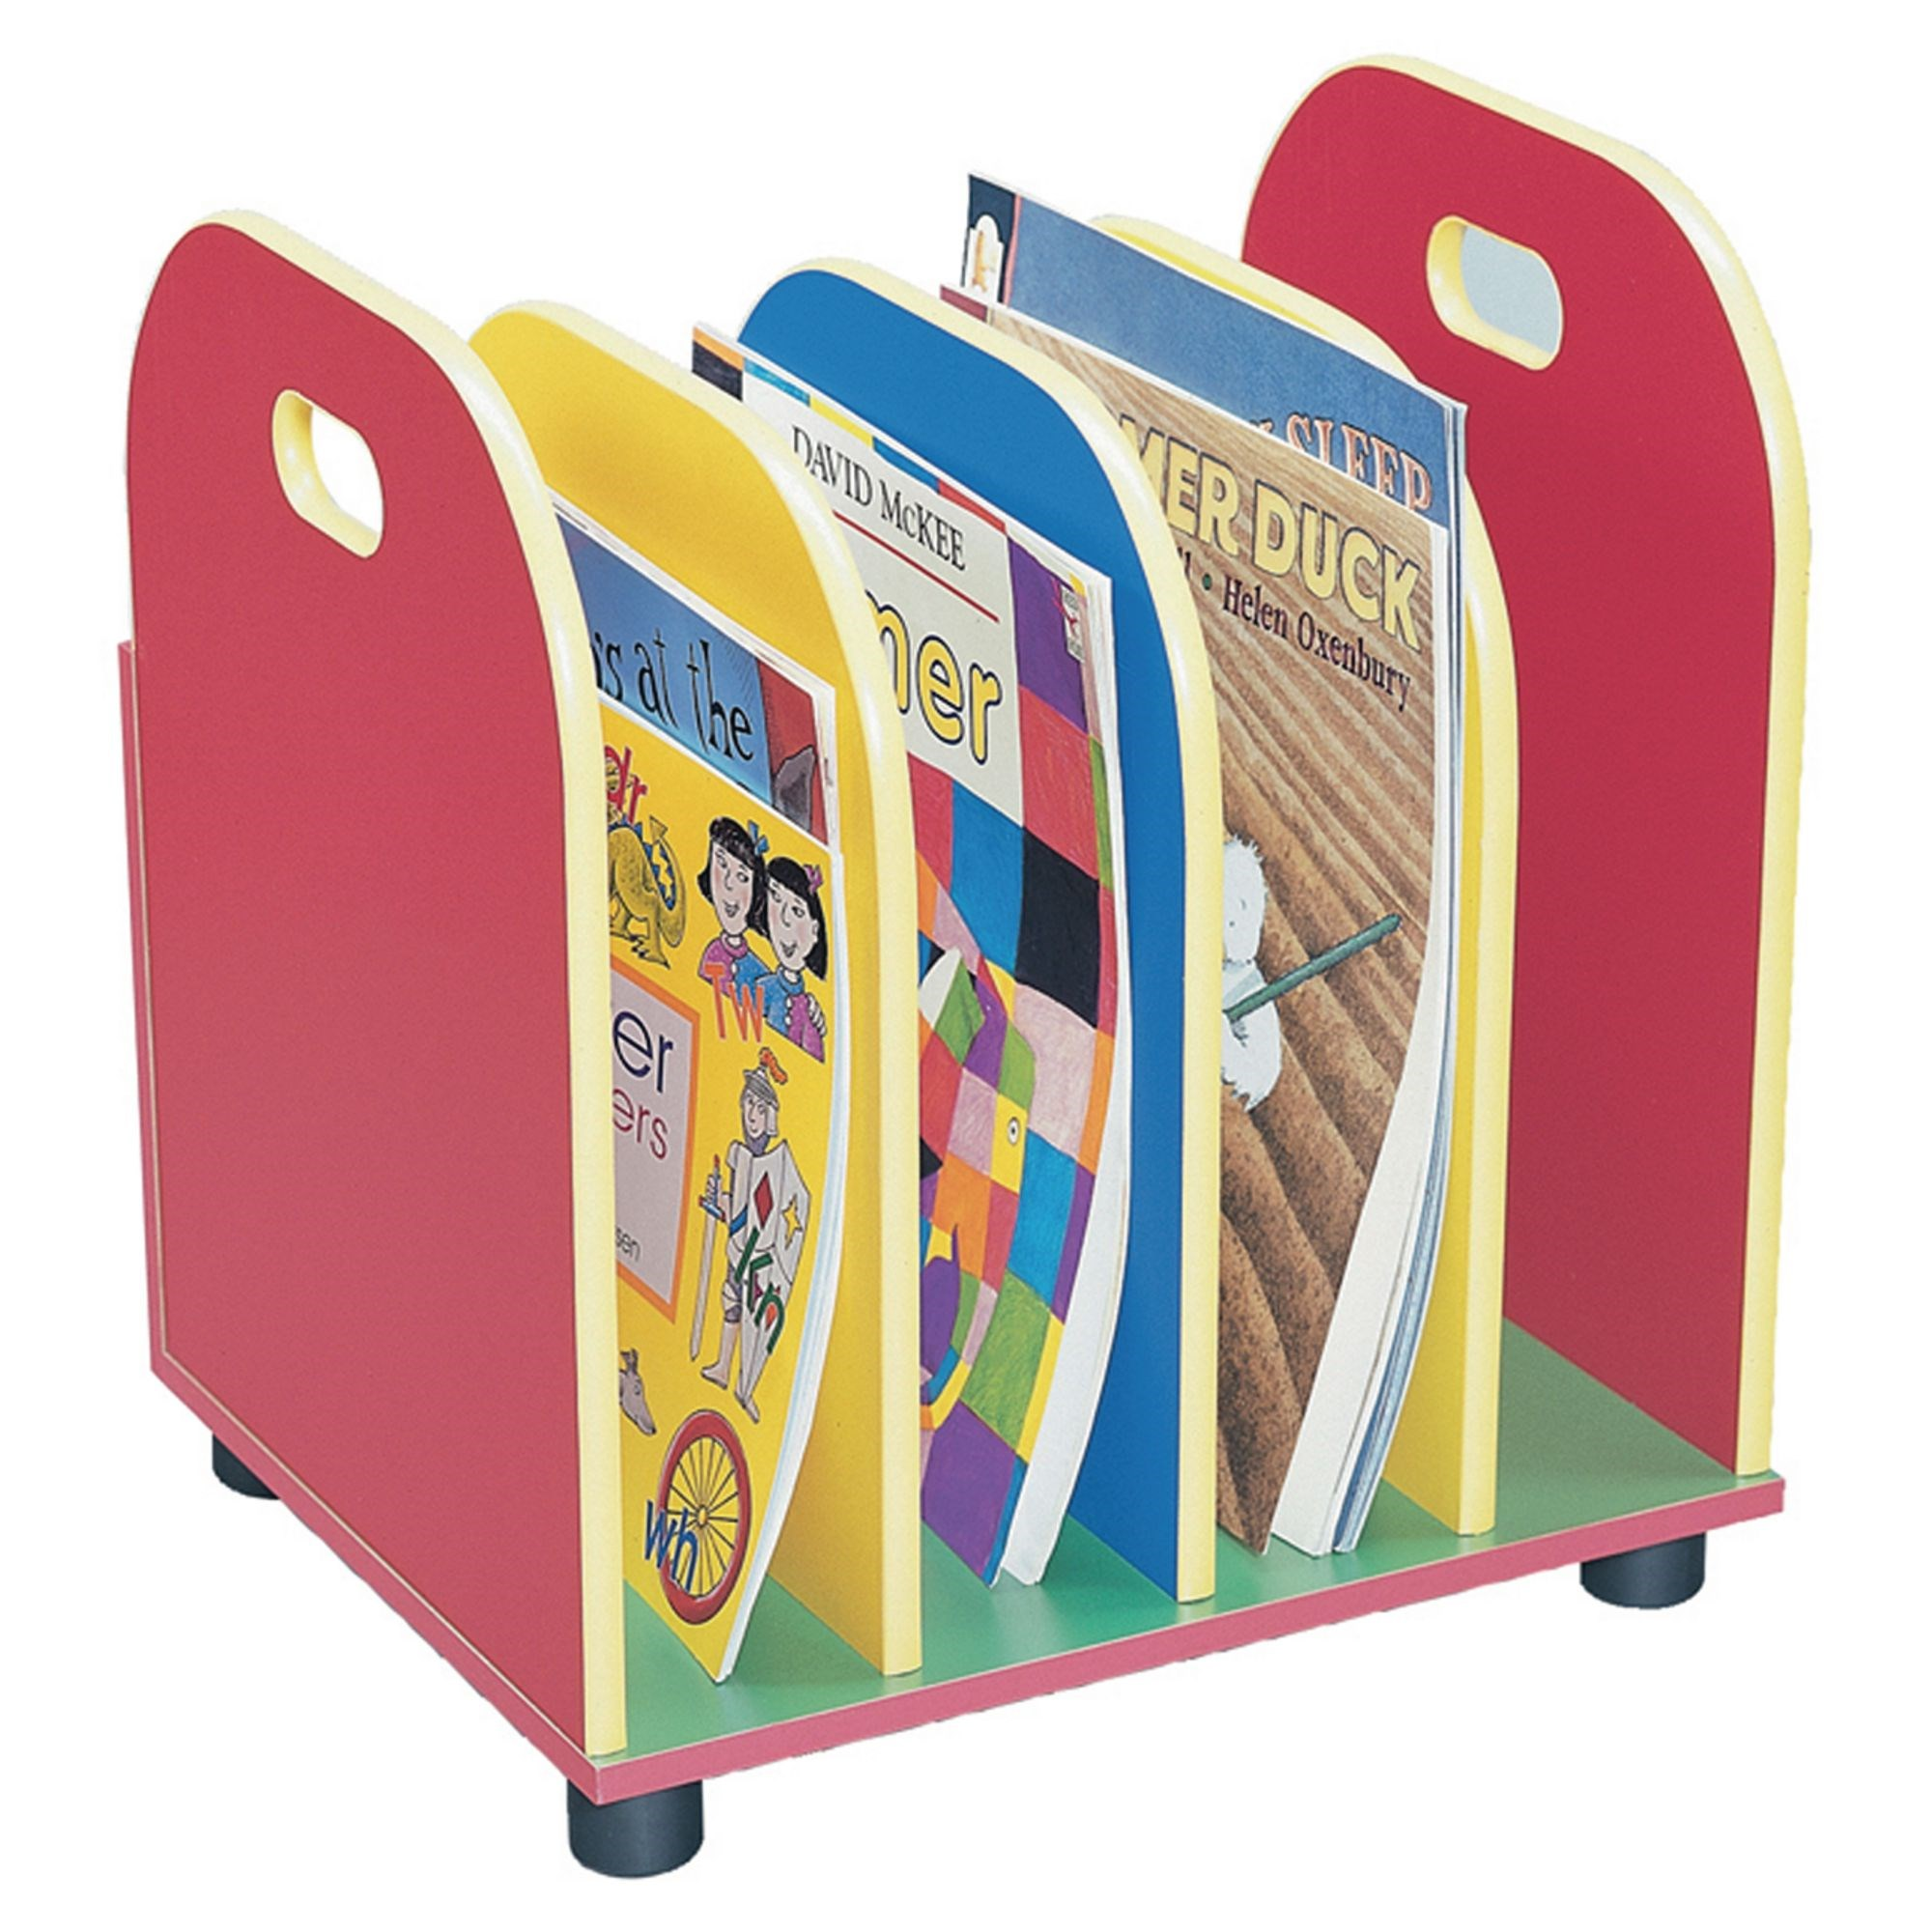 Primary Col Big Book Holder